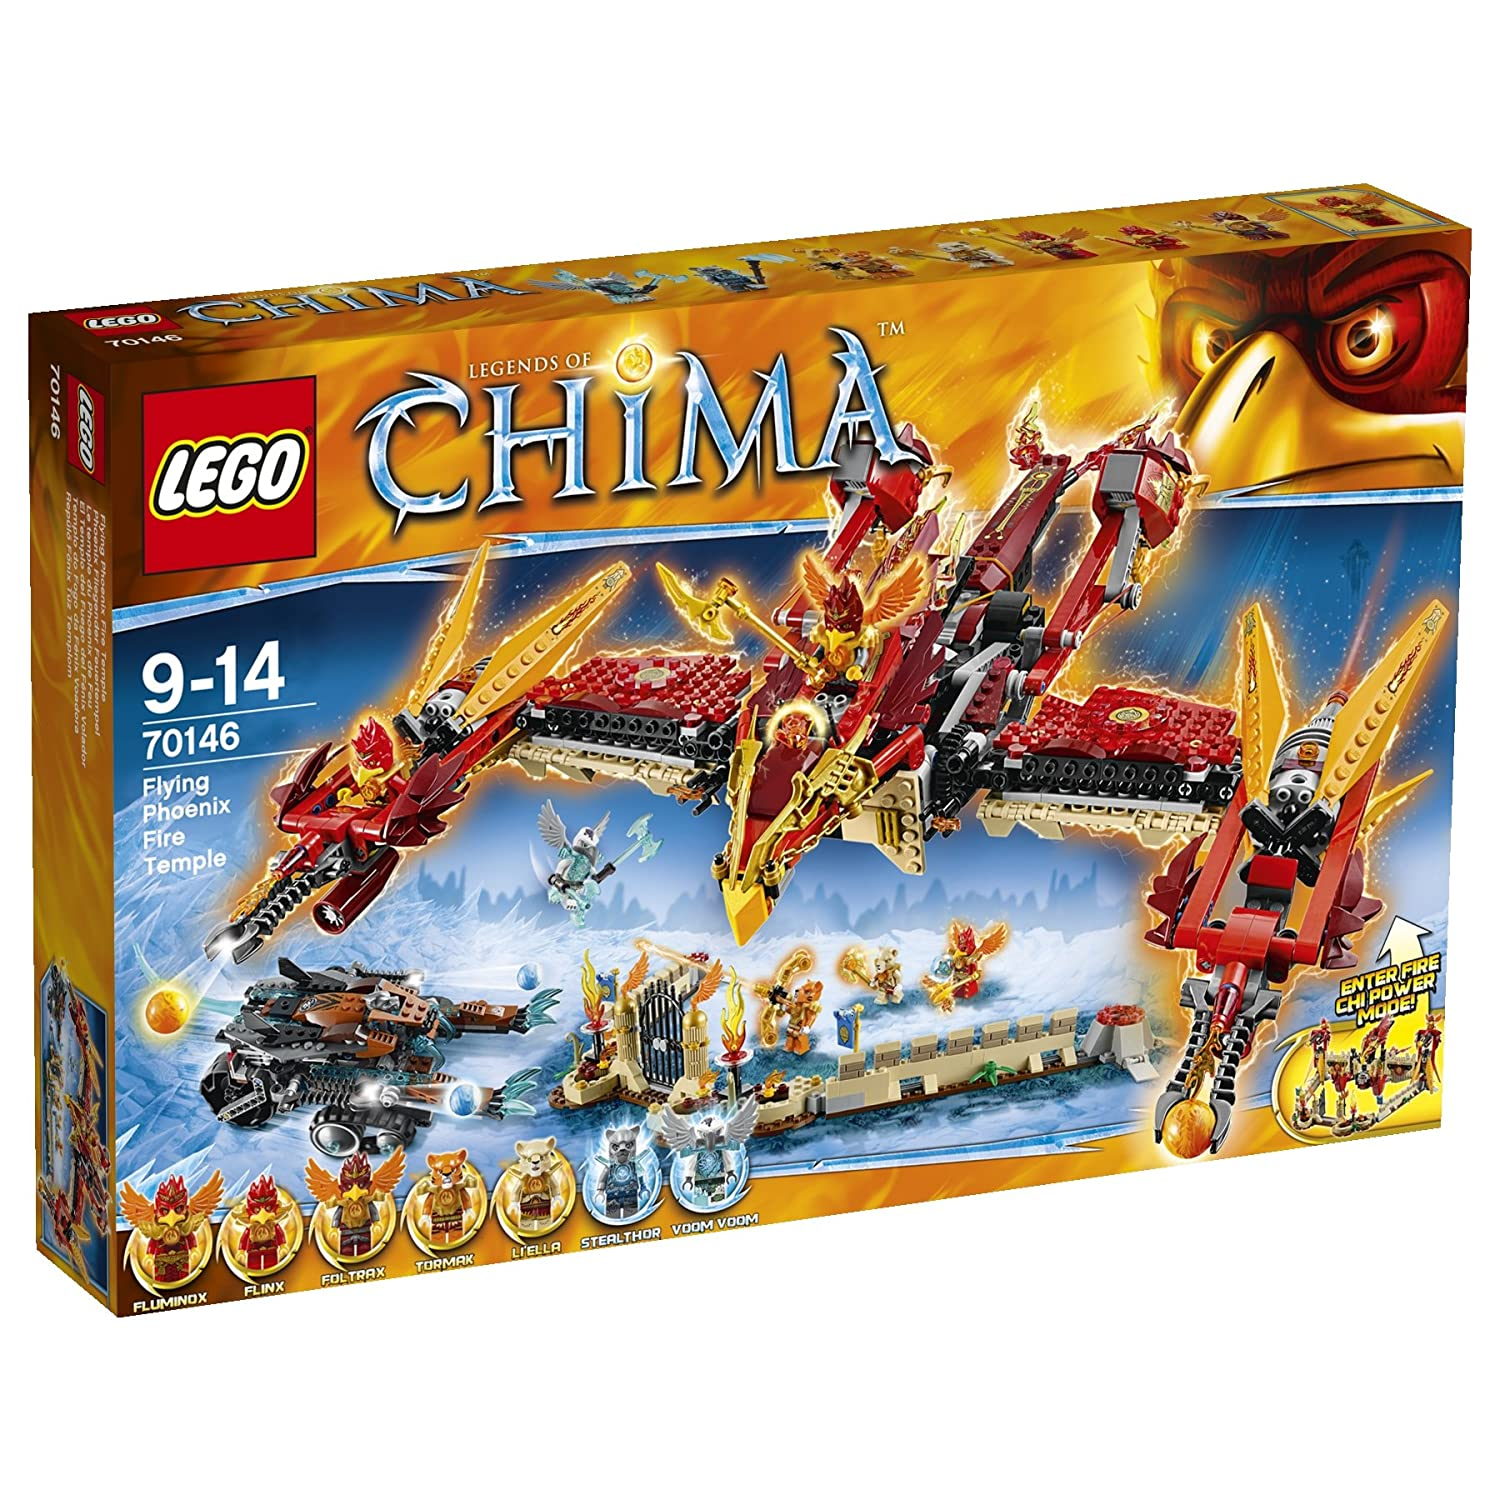 Amazon chima party supplies - Amazon Com Lego Legends Of Chima Flying Phoenix Fire Temple Kids Building Play Set 70146 Toys Games